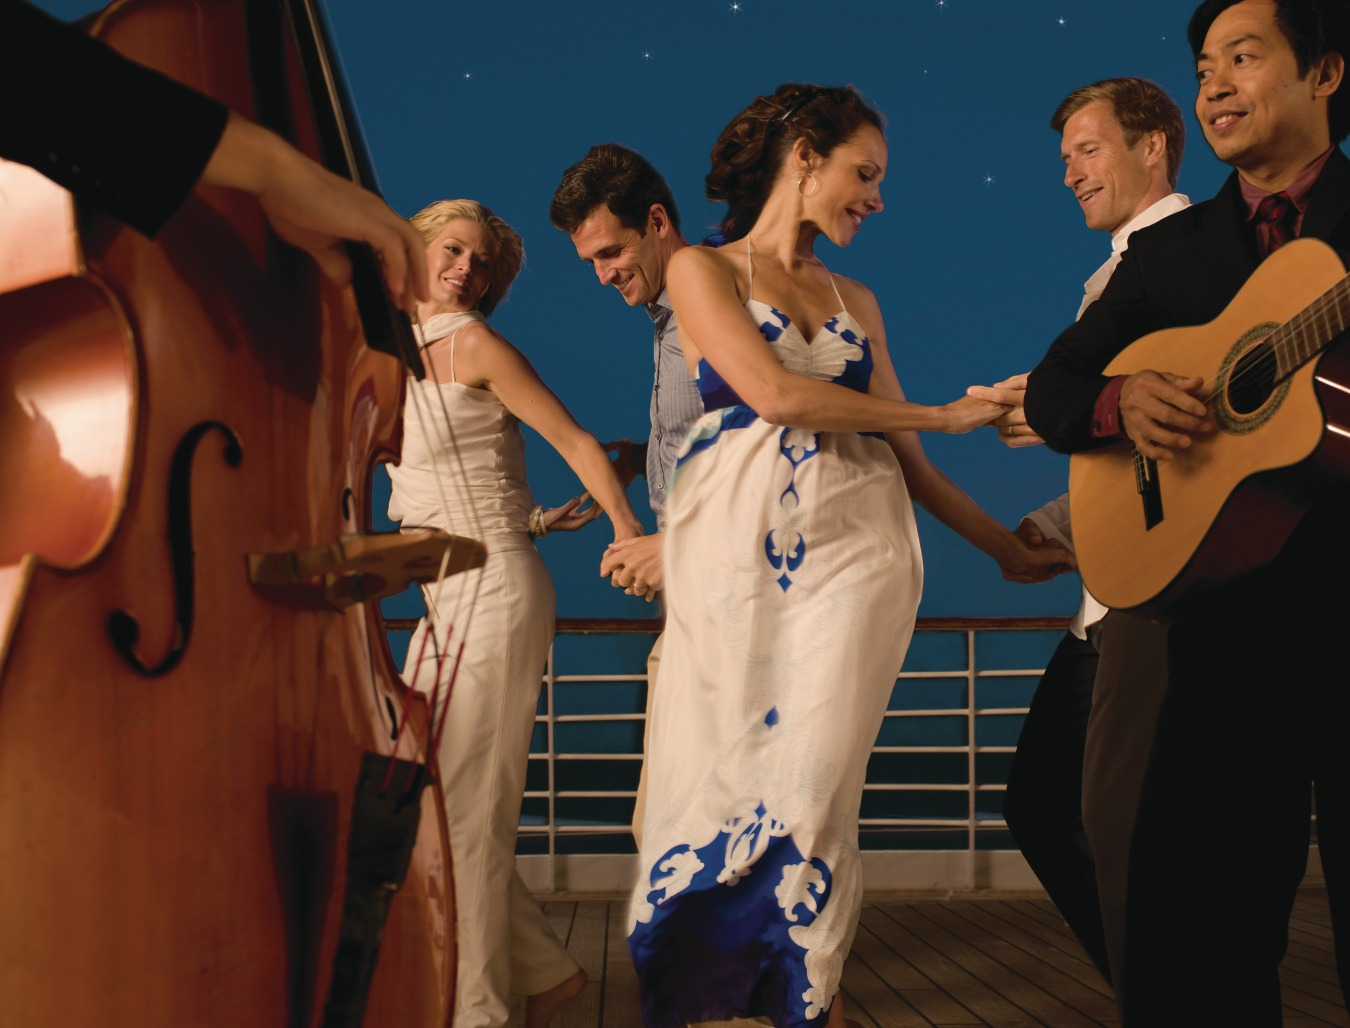 Seabourn Under the Star Music and Dancing on Deck.jpg